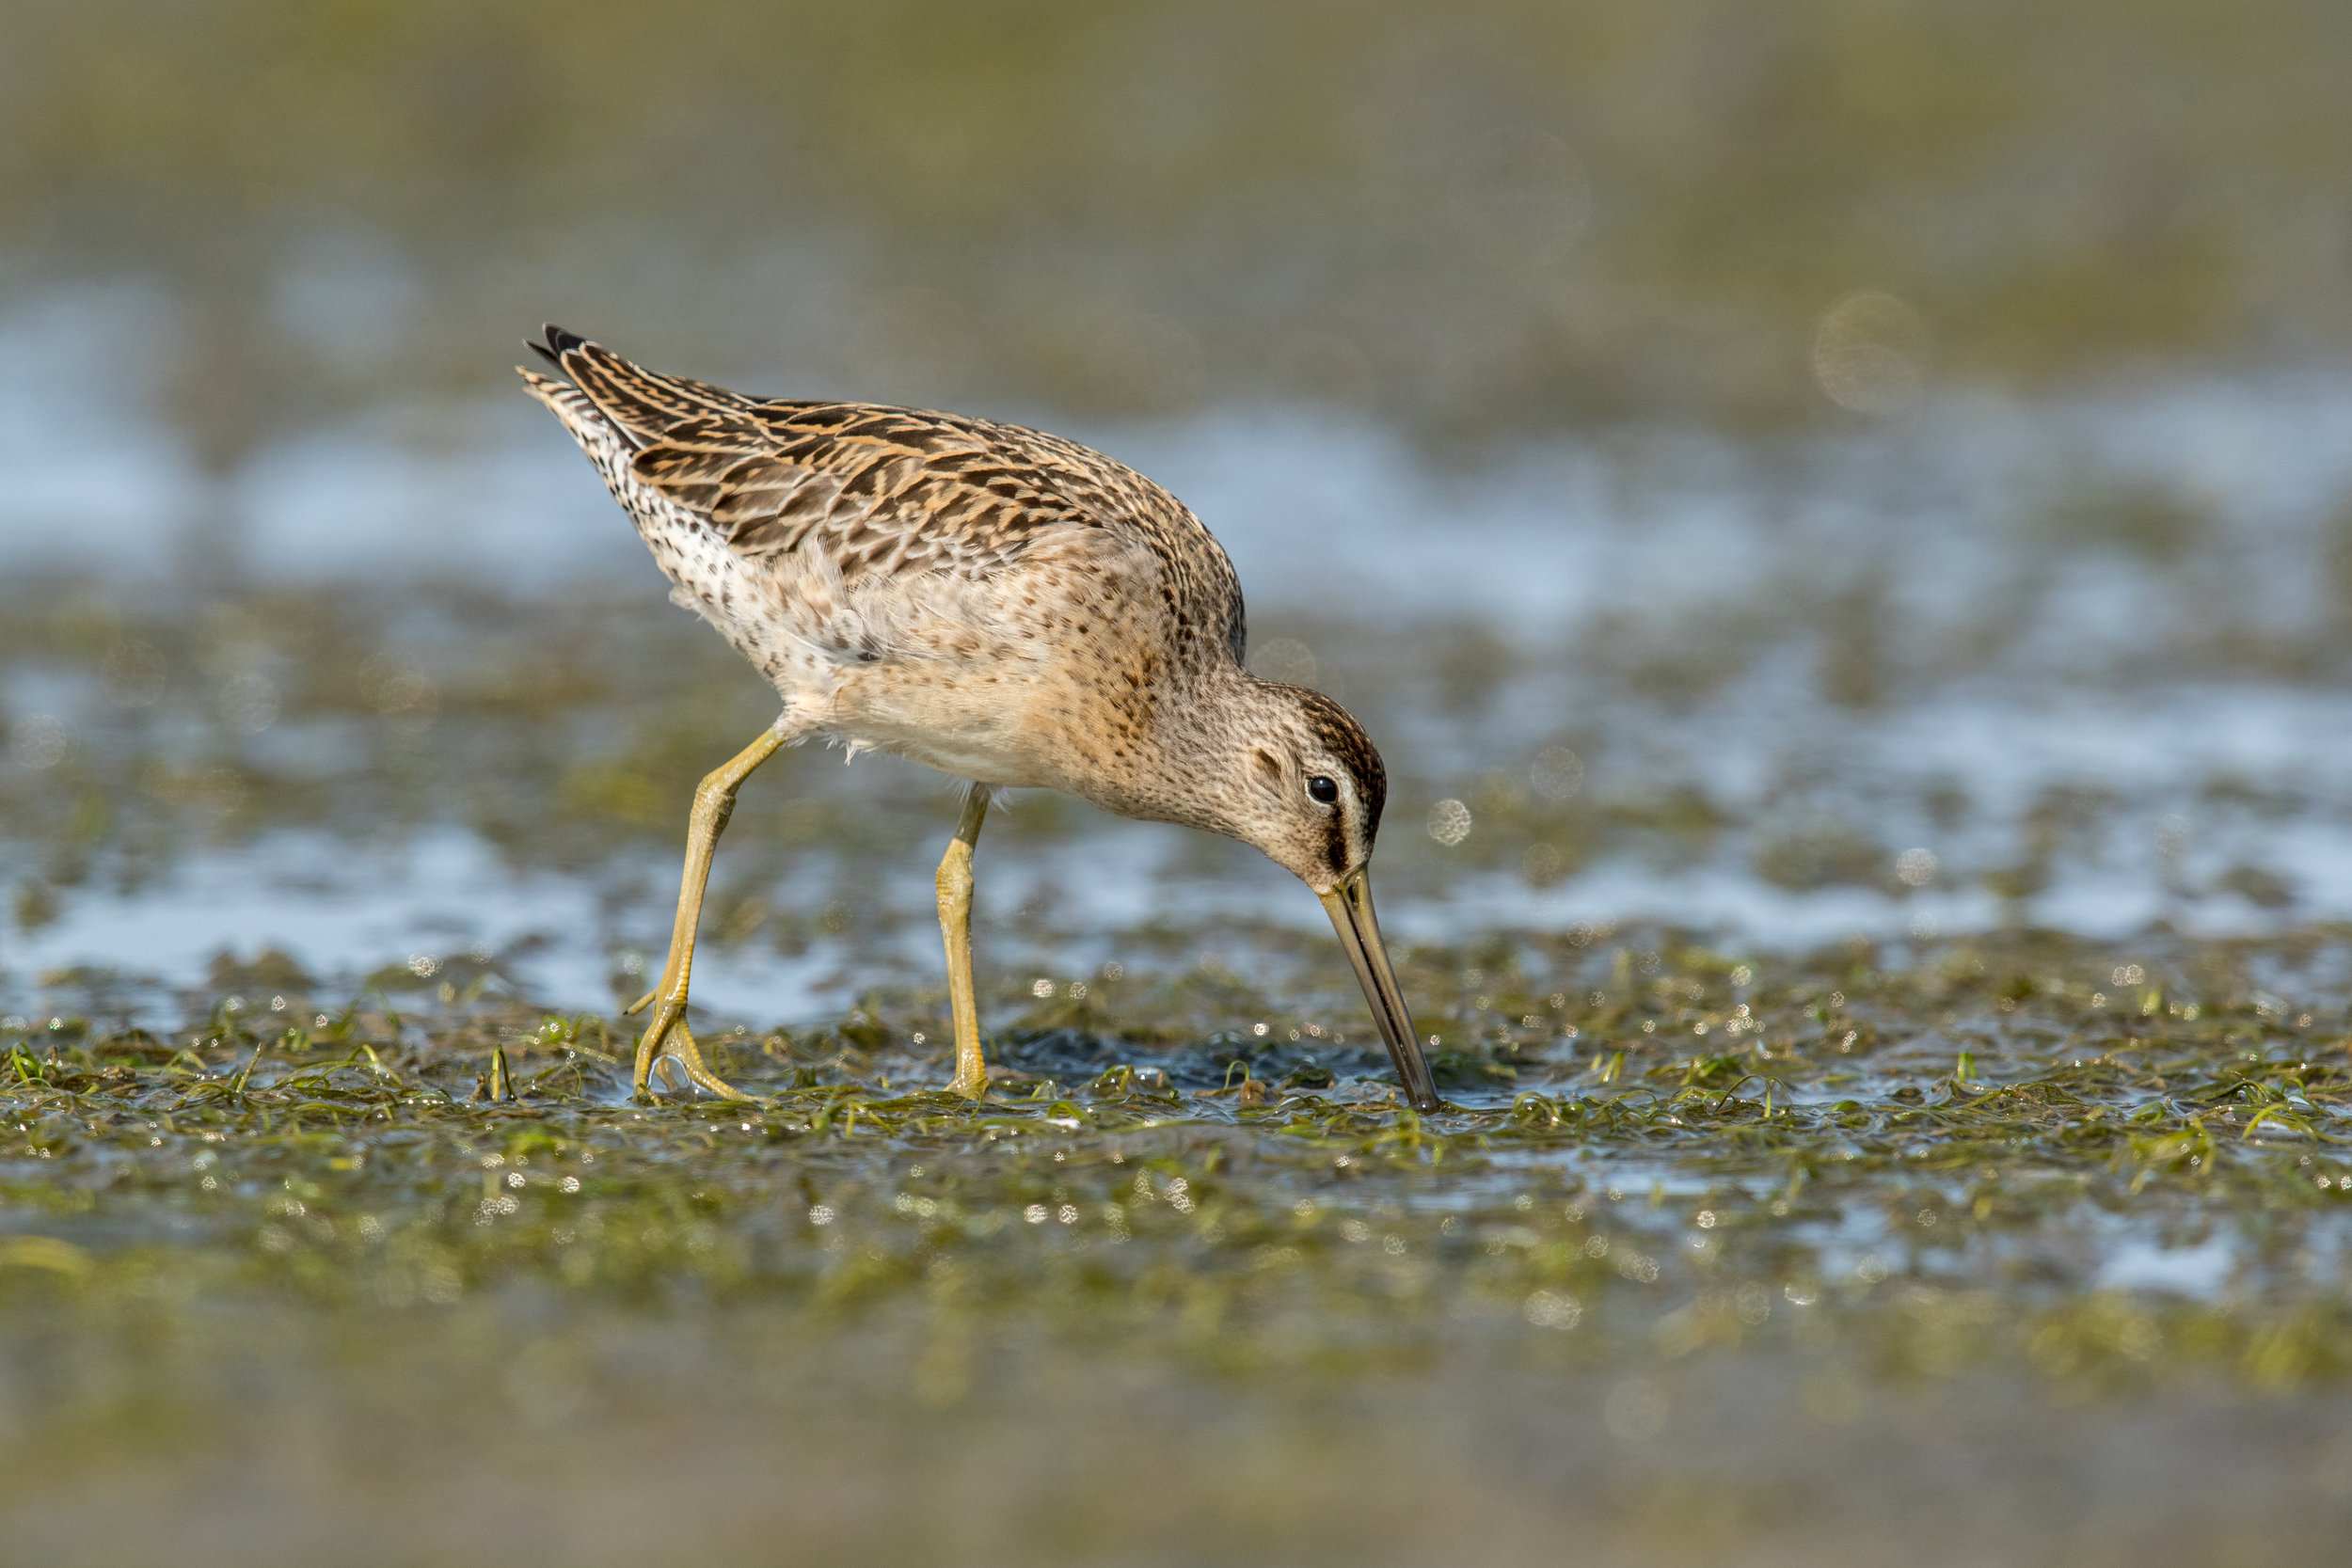 PC; Mick Thompson (Short-billed Dowitcher)